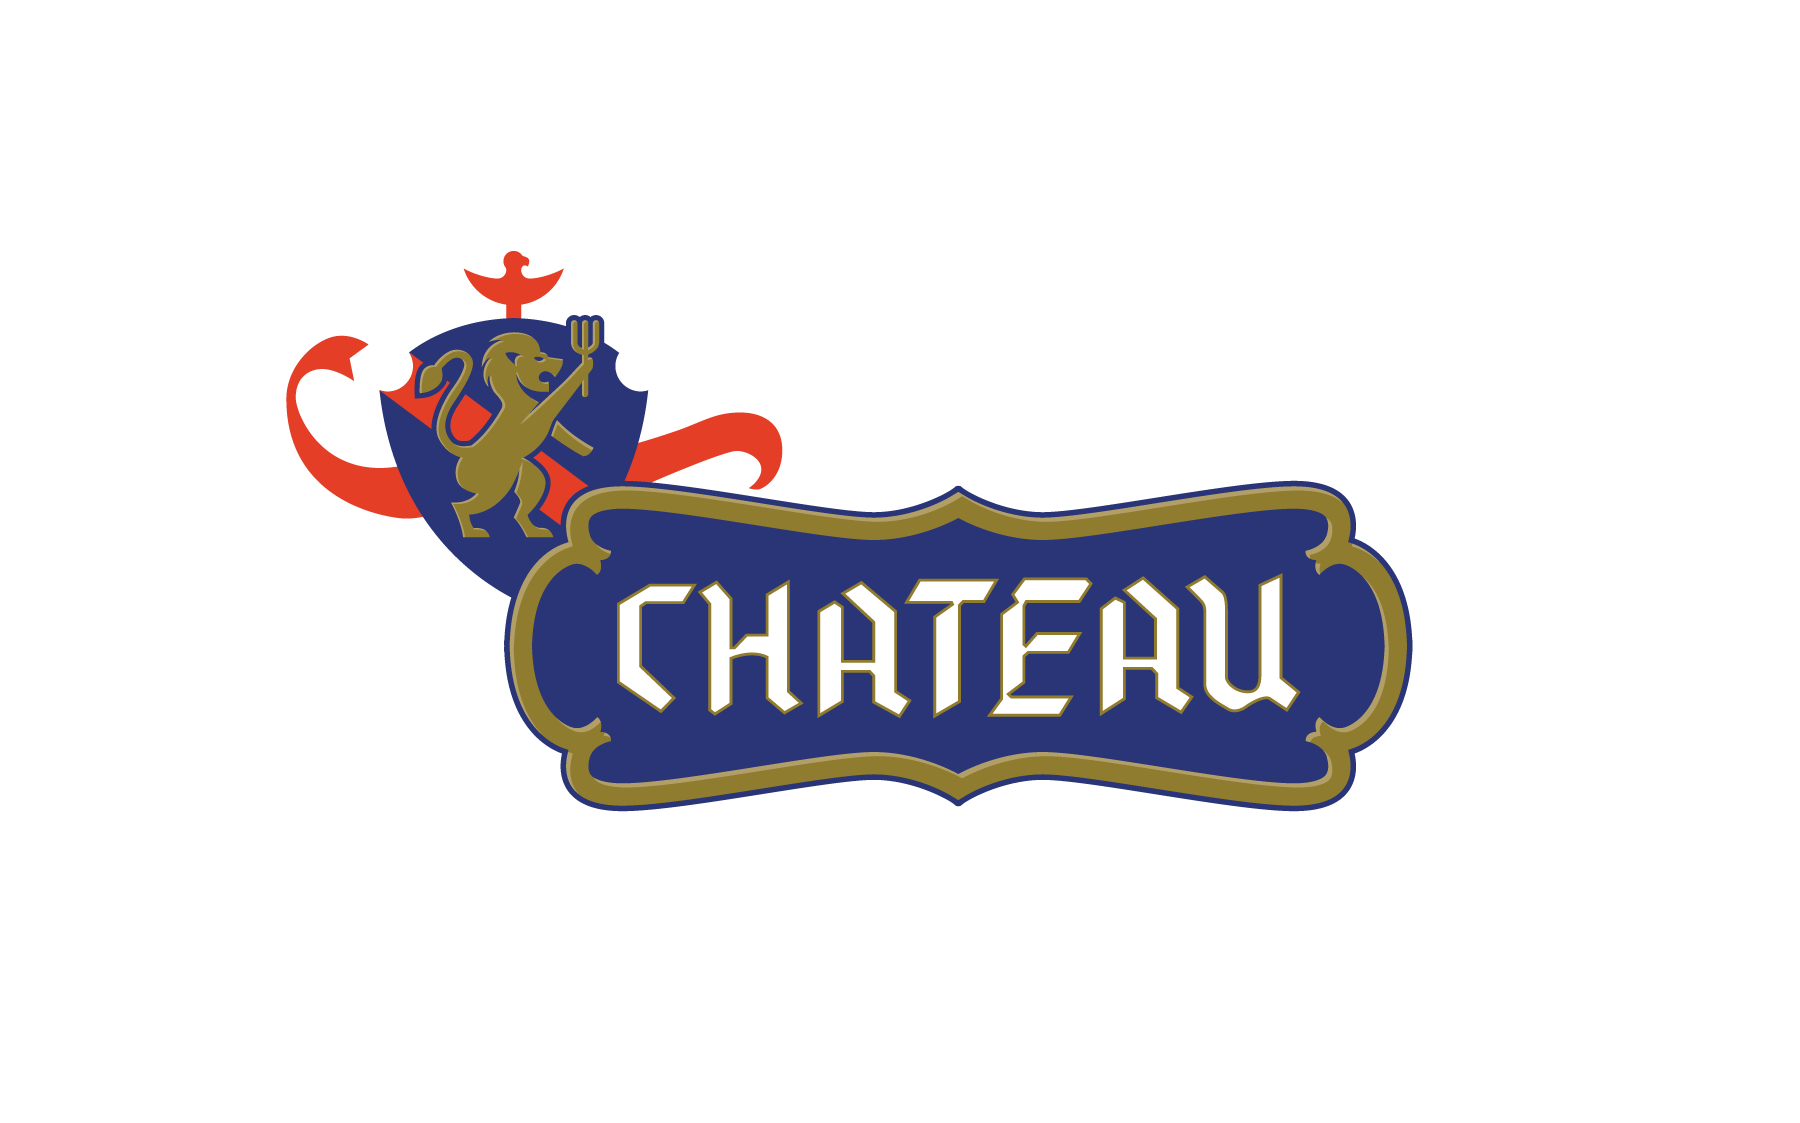 Chateau Food Products logo design